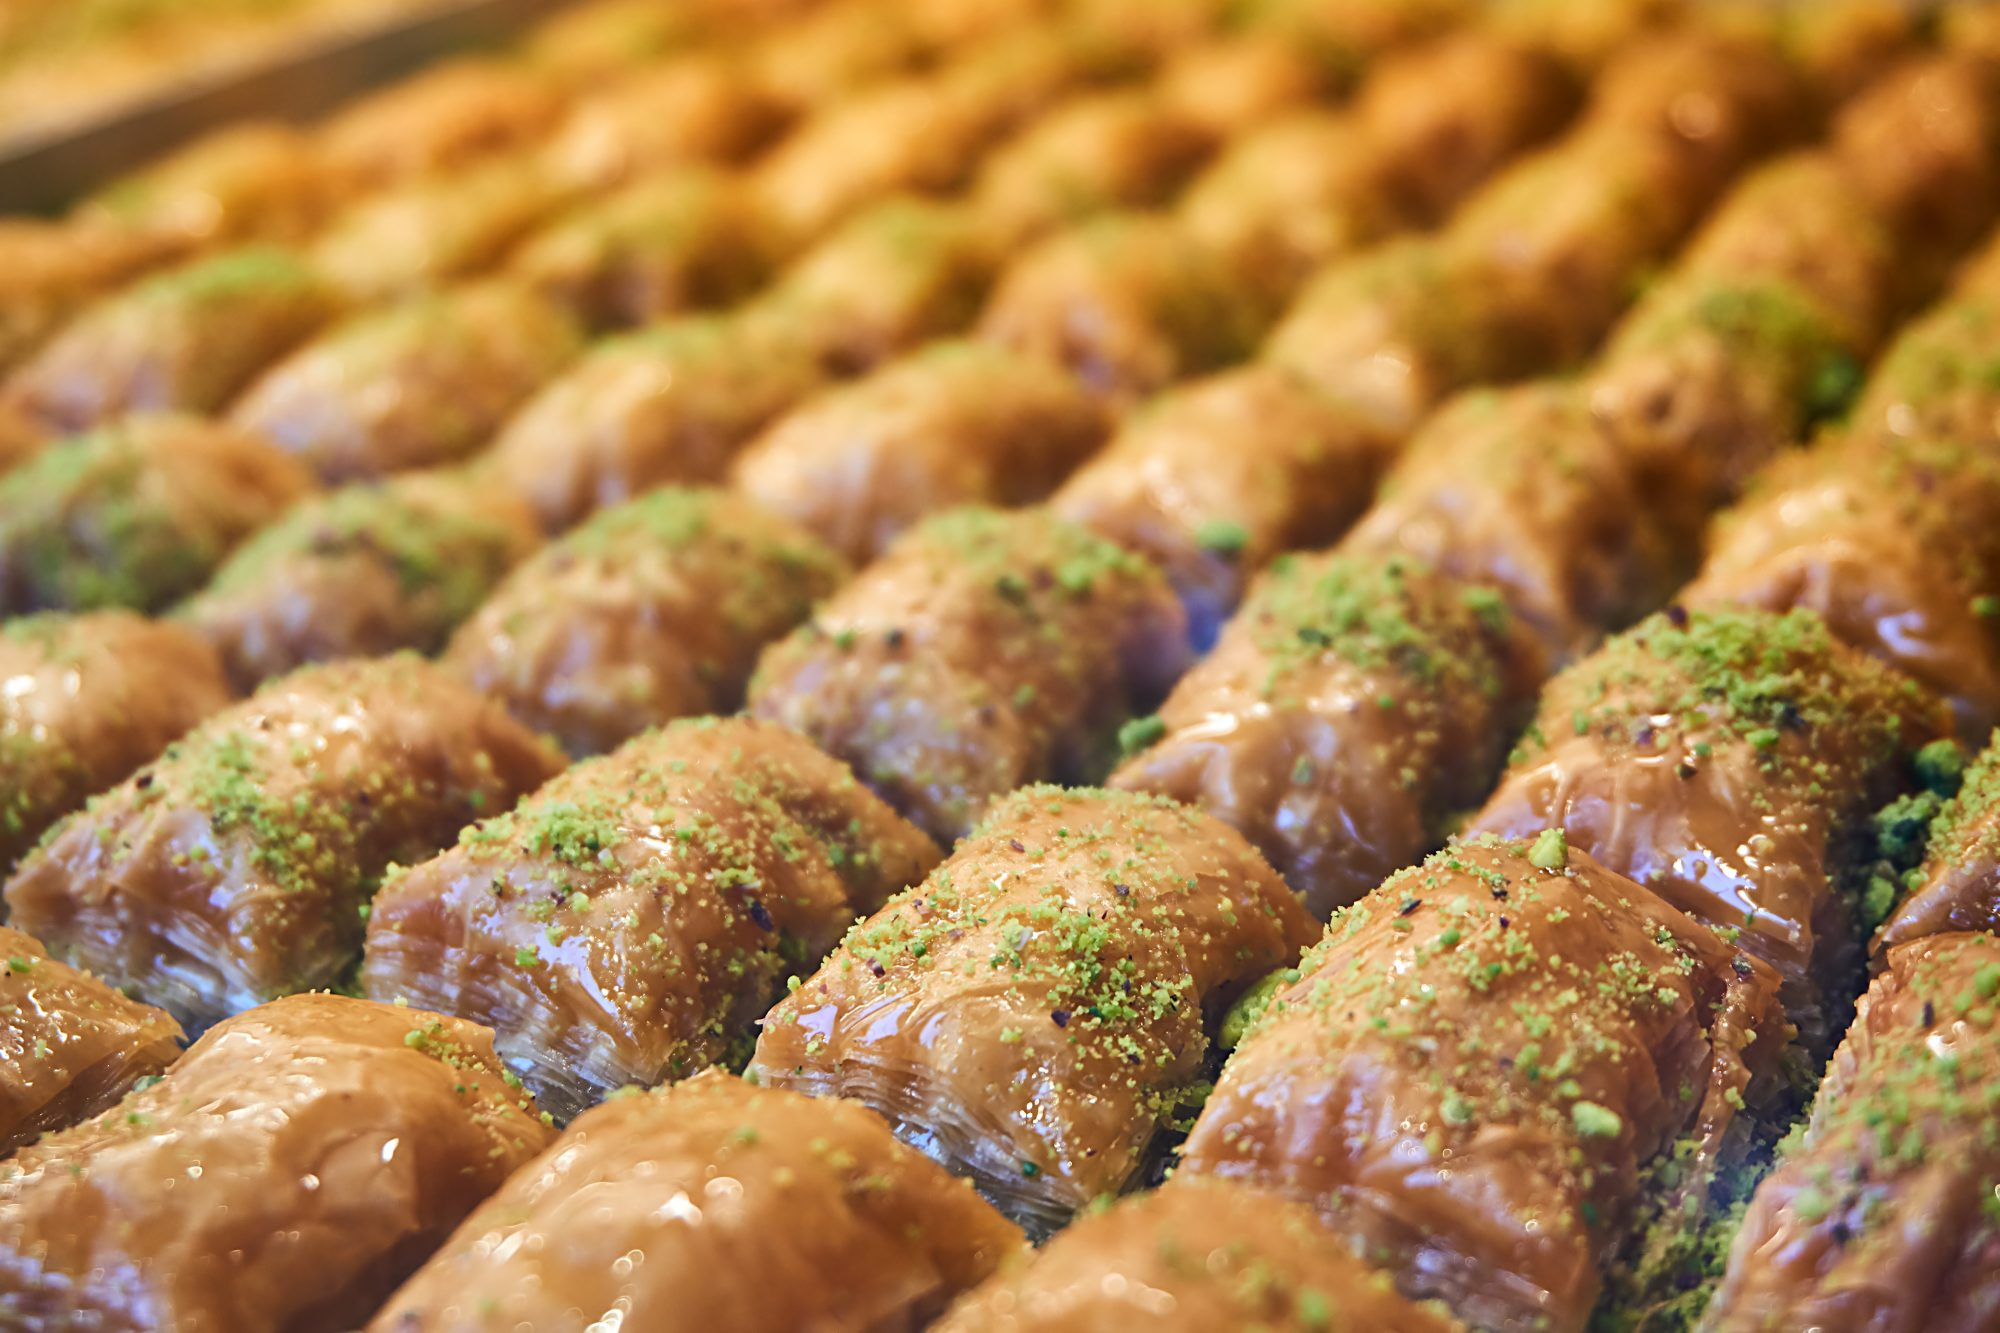 Neat baklava Getty 5/19/20